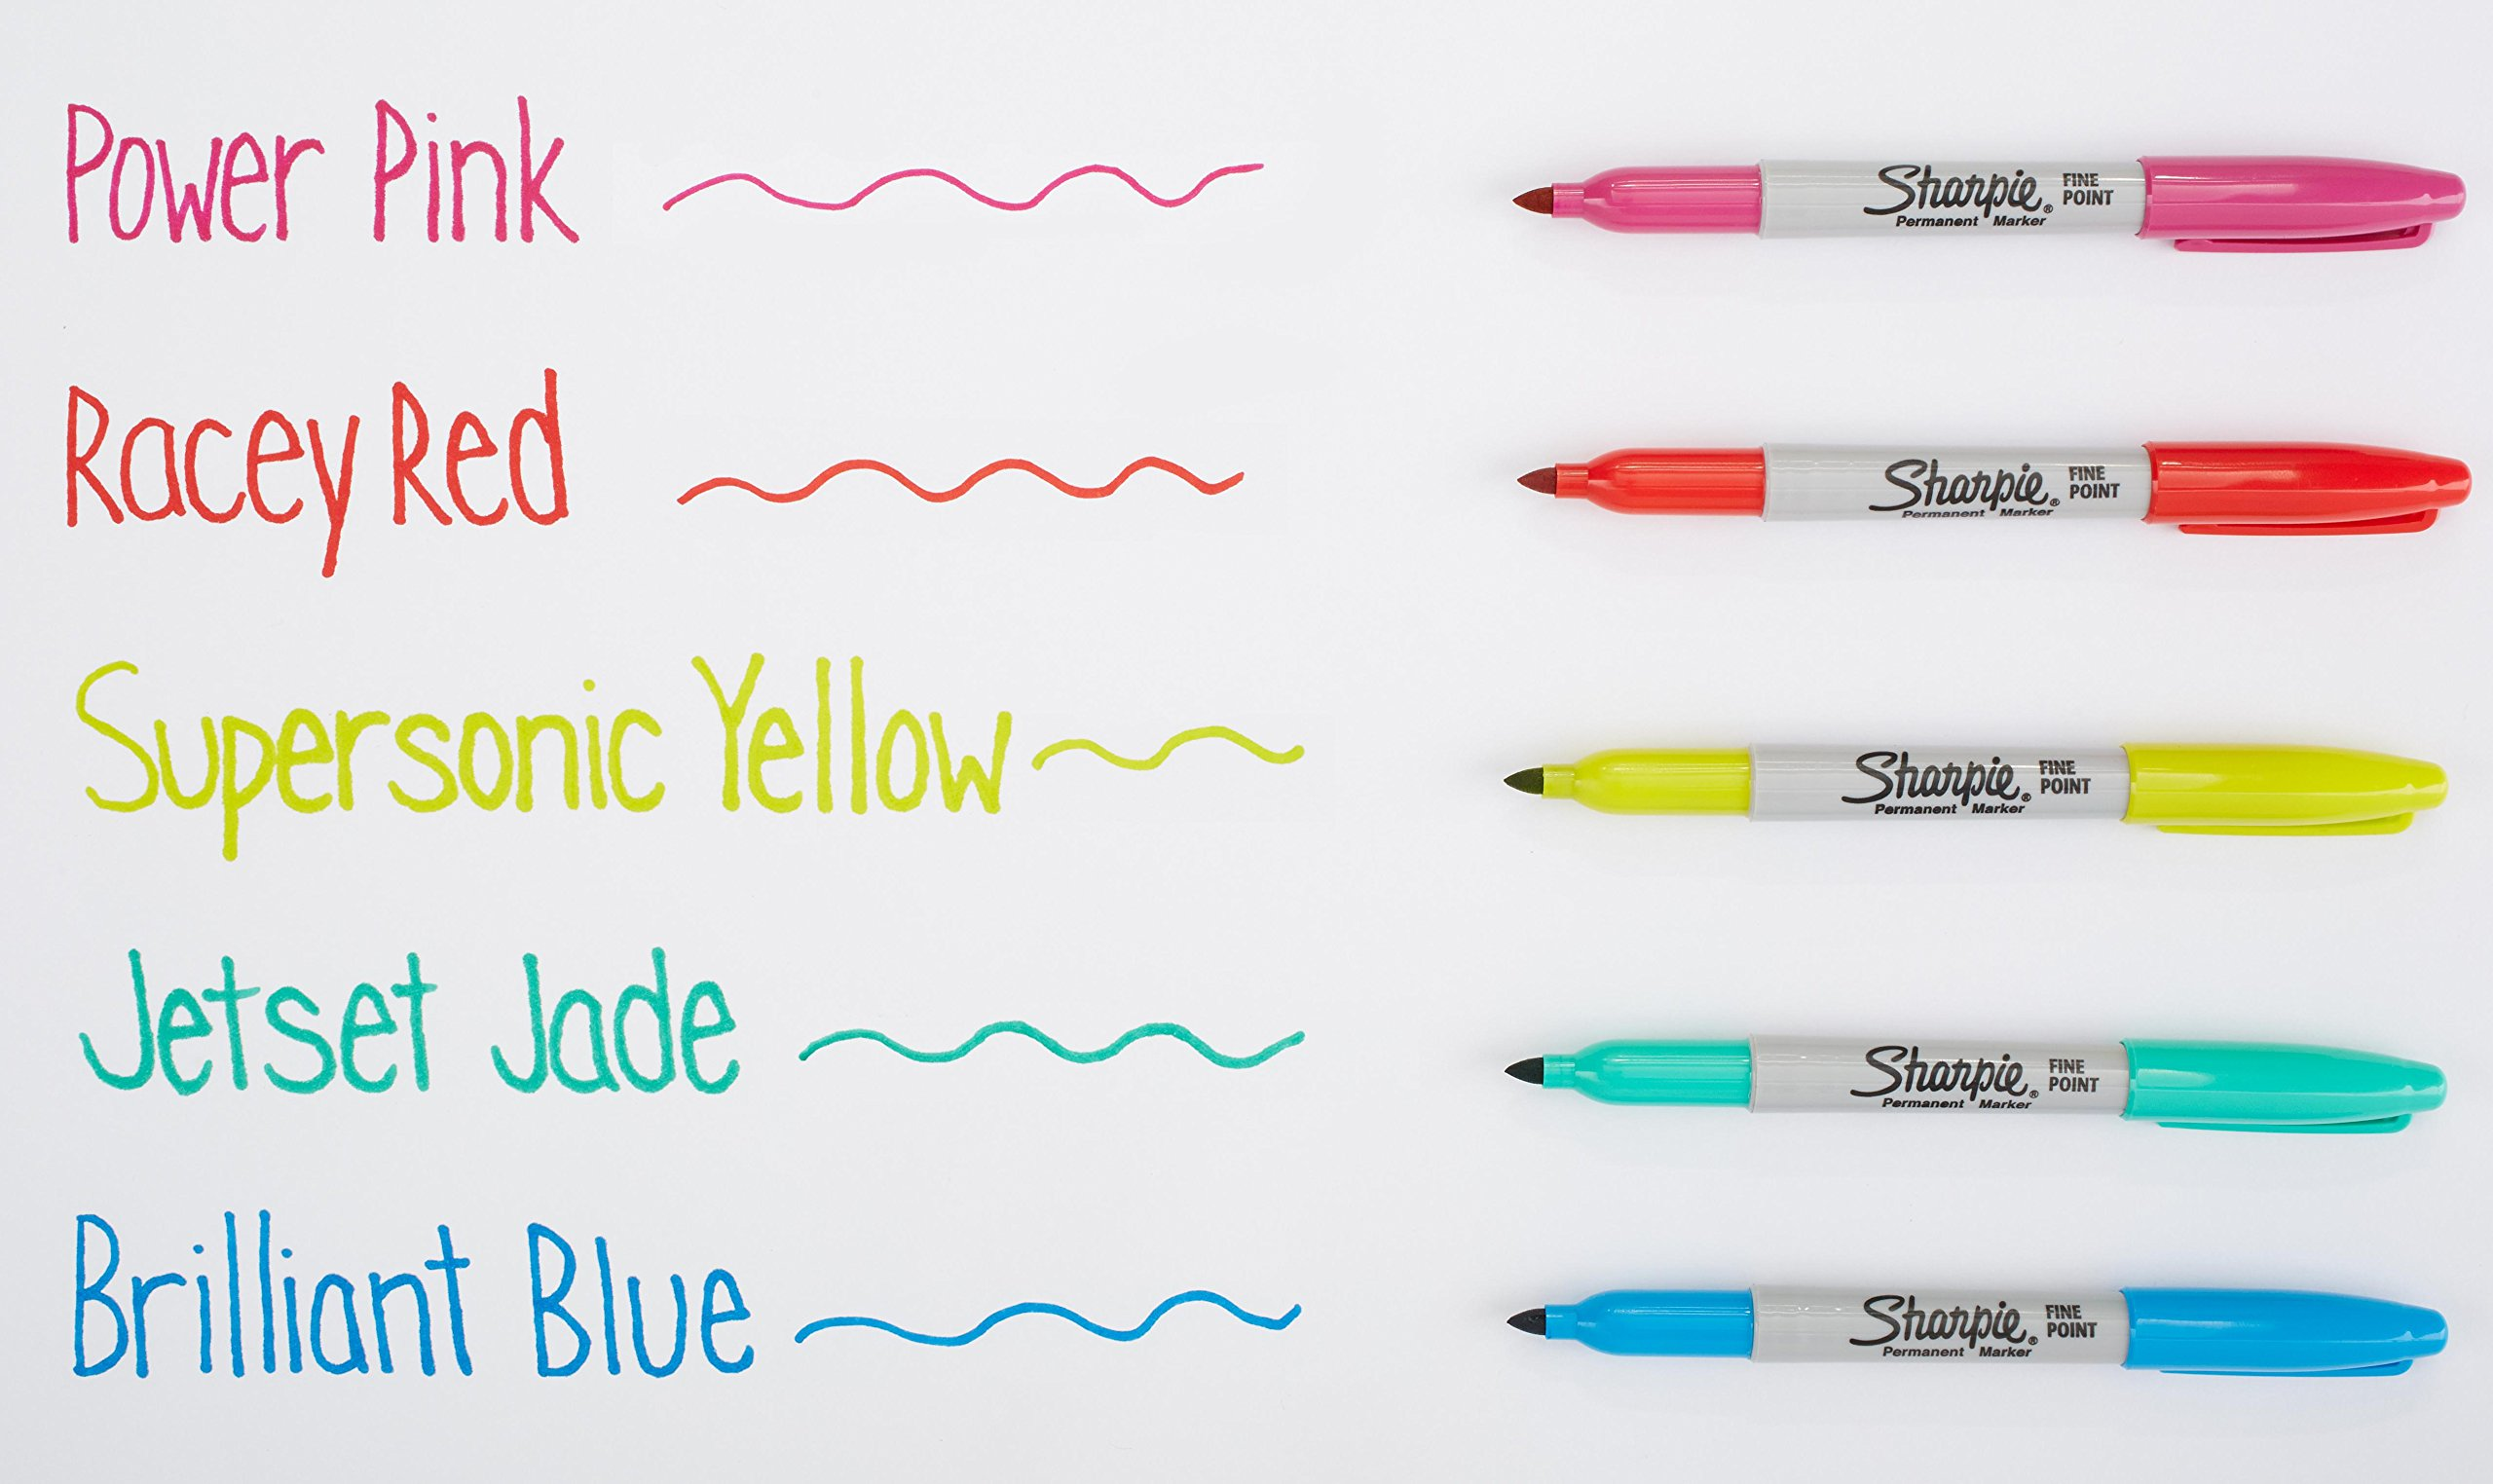 Sharpie Color Burst Permanent Markers, Fine Point, Assorted Colors, 24 Count by Sharpie (Image #8)